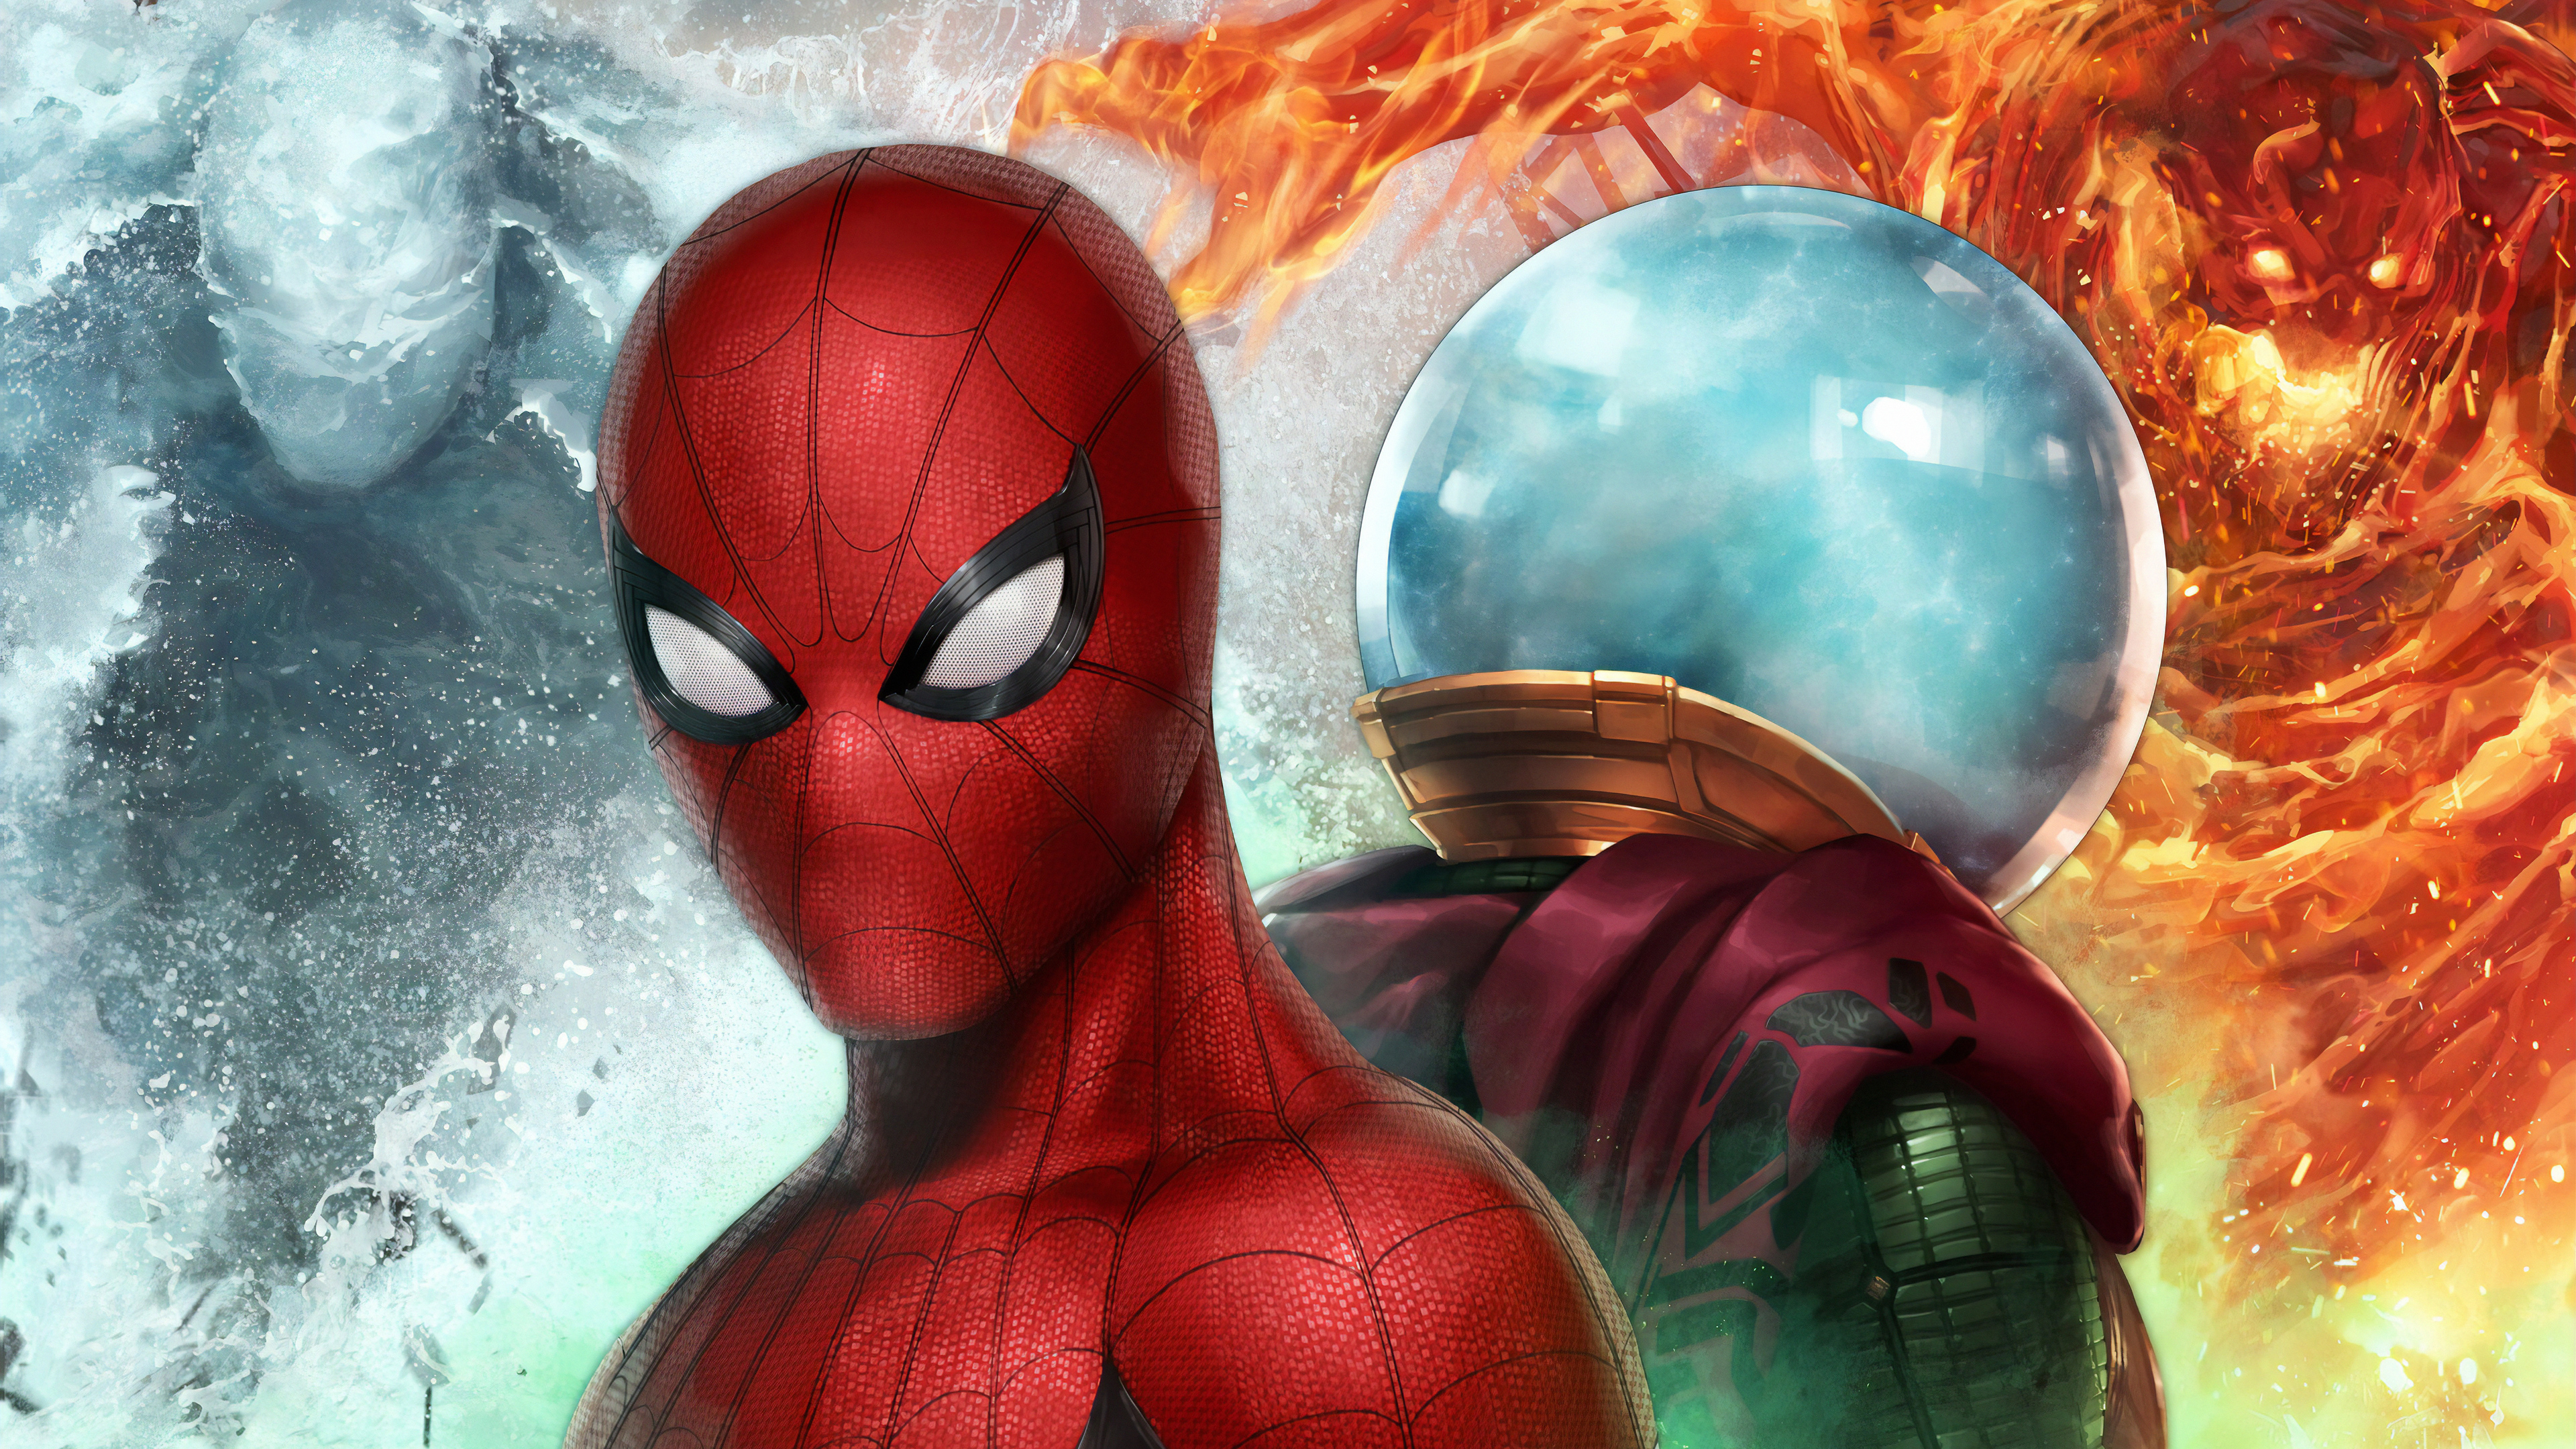 3840x2160 Spiderman Vs Mysterio In Marvel Future Fight 4k